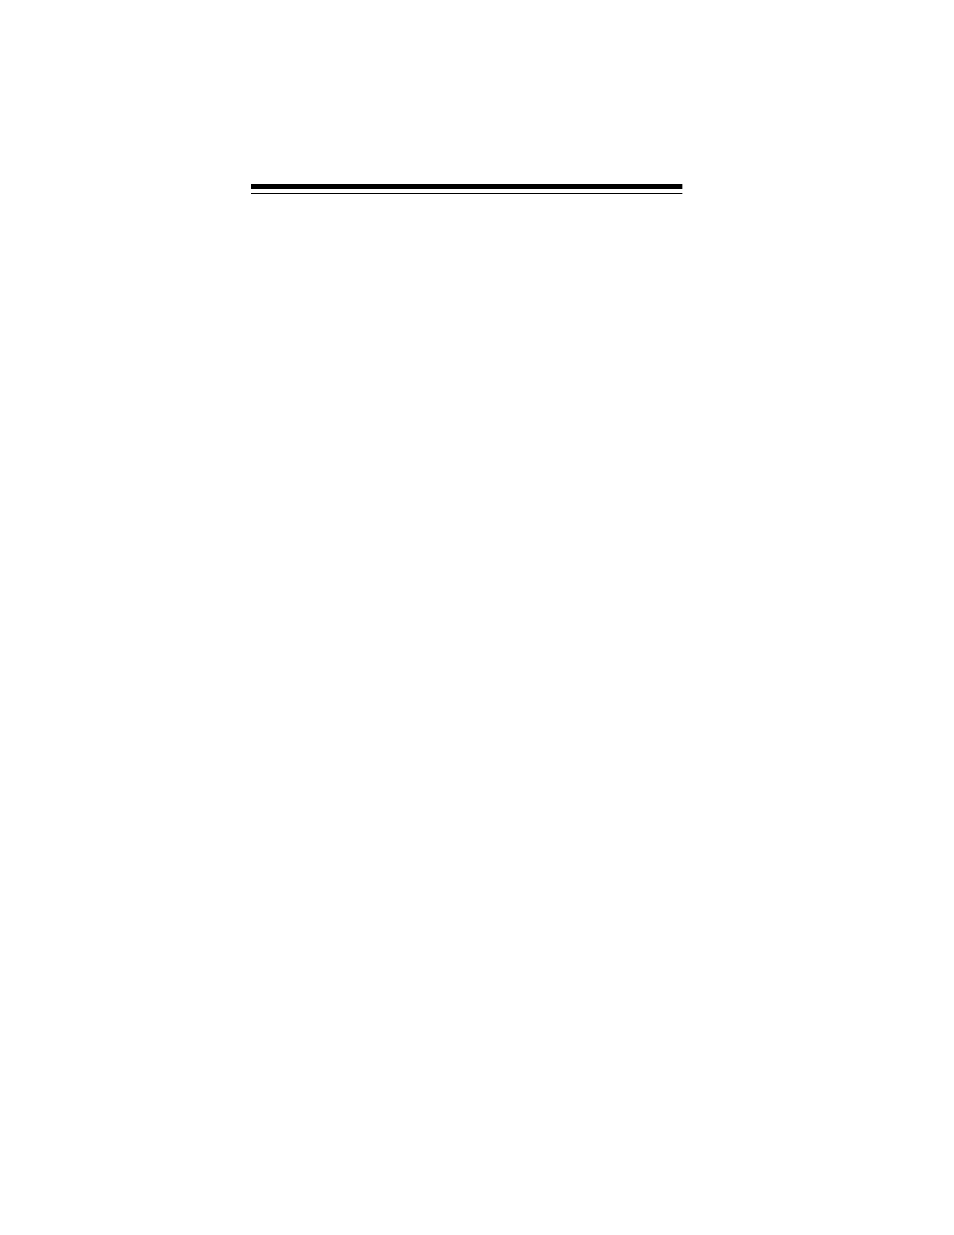 Using power save, Using the display backlight, Turning the key tone on and  off | Radio Shack PRO-89 User Manual | Page 46 / 64